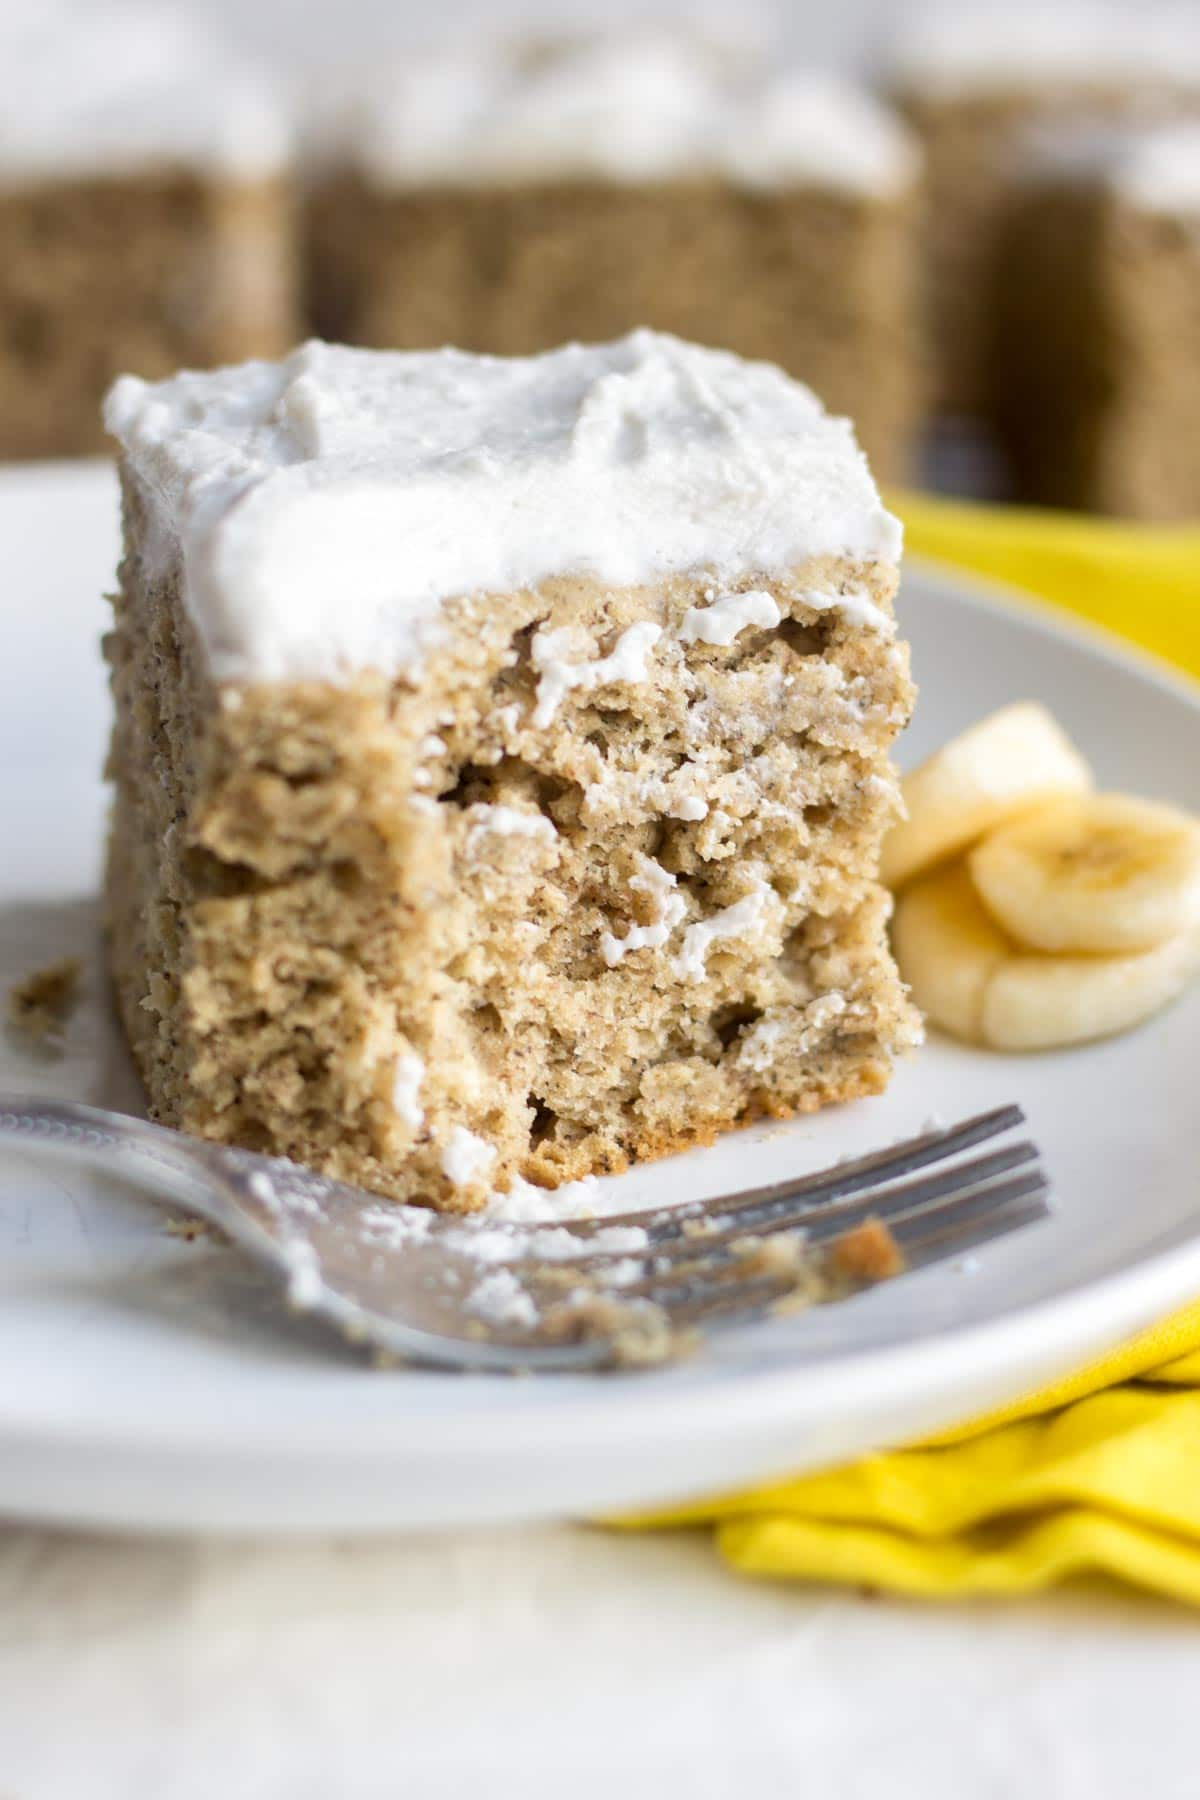 Healthy Banana Cake! You will no believe how easy and healthy is banana cake recipe is. It's oil free and refined sugar free and naturally sweet from the bananas. Top it with vegan coconut whipped cream frosting and your friends will be amazed! So moist and flavorful!